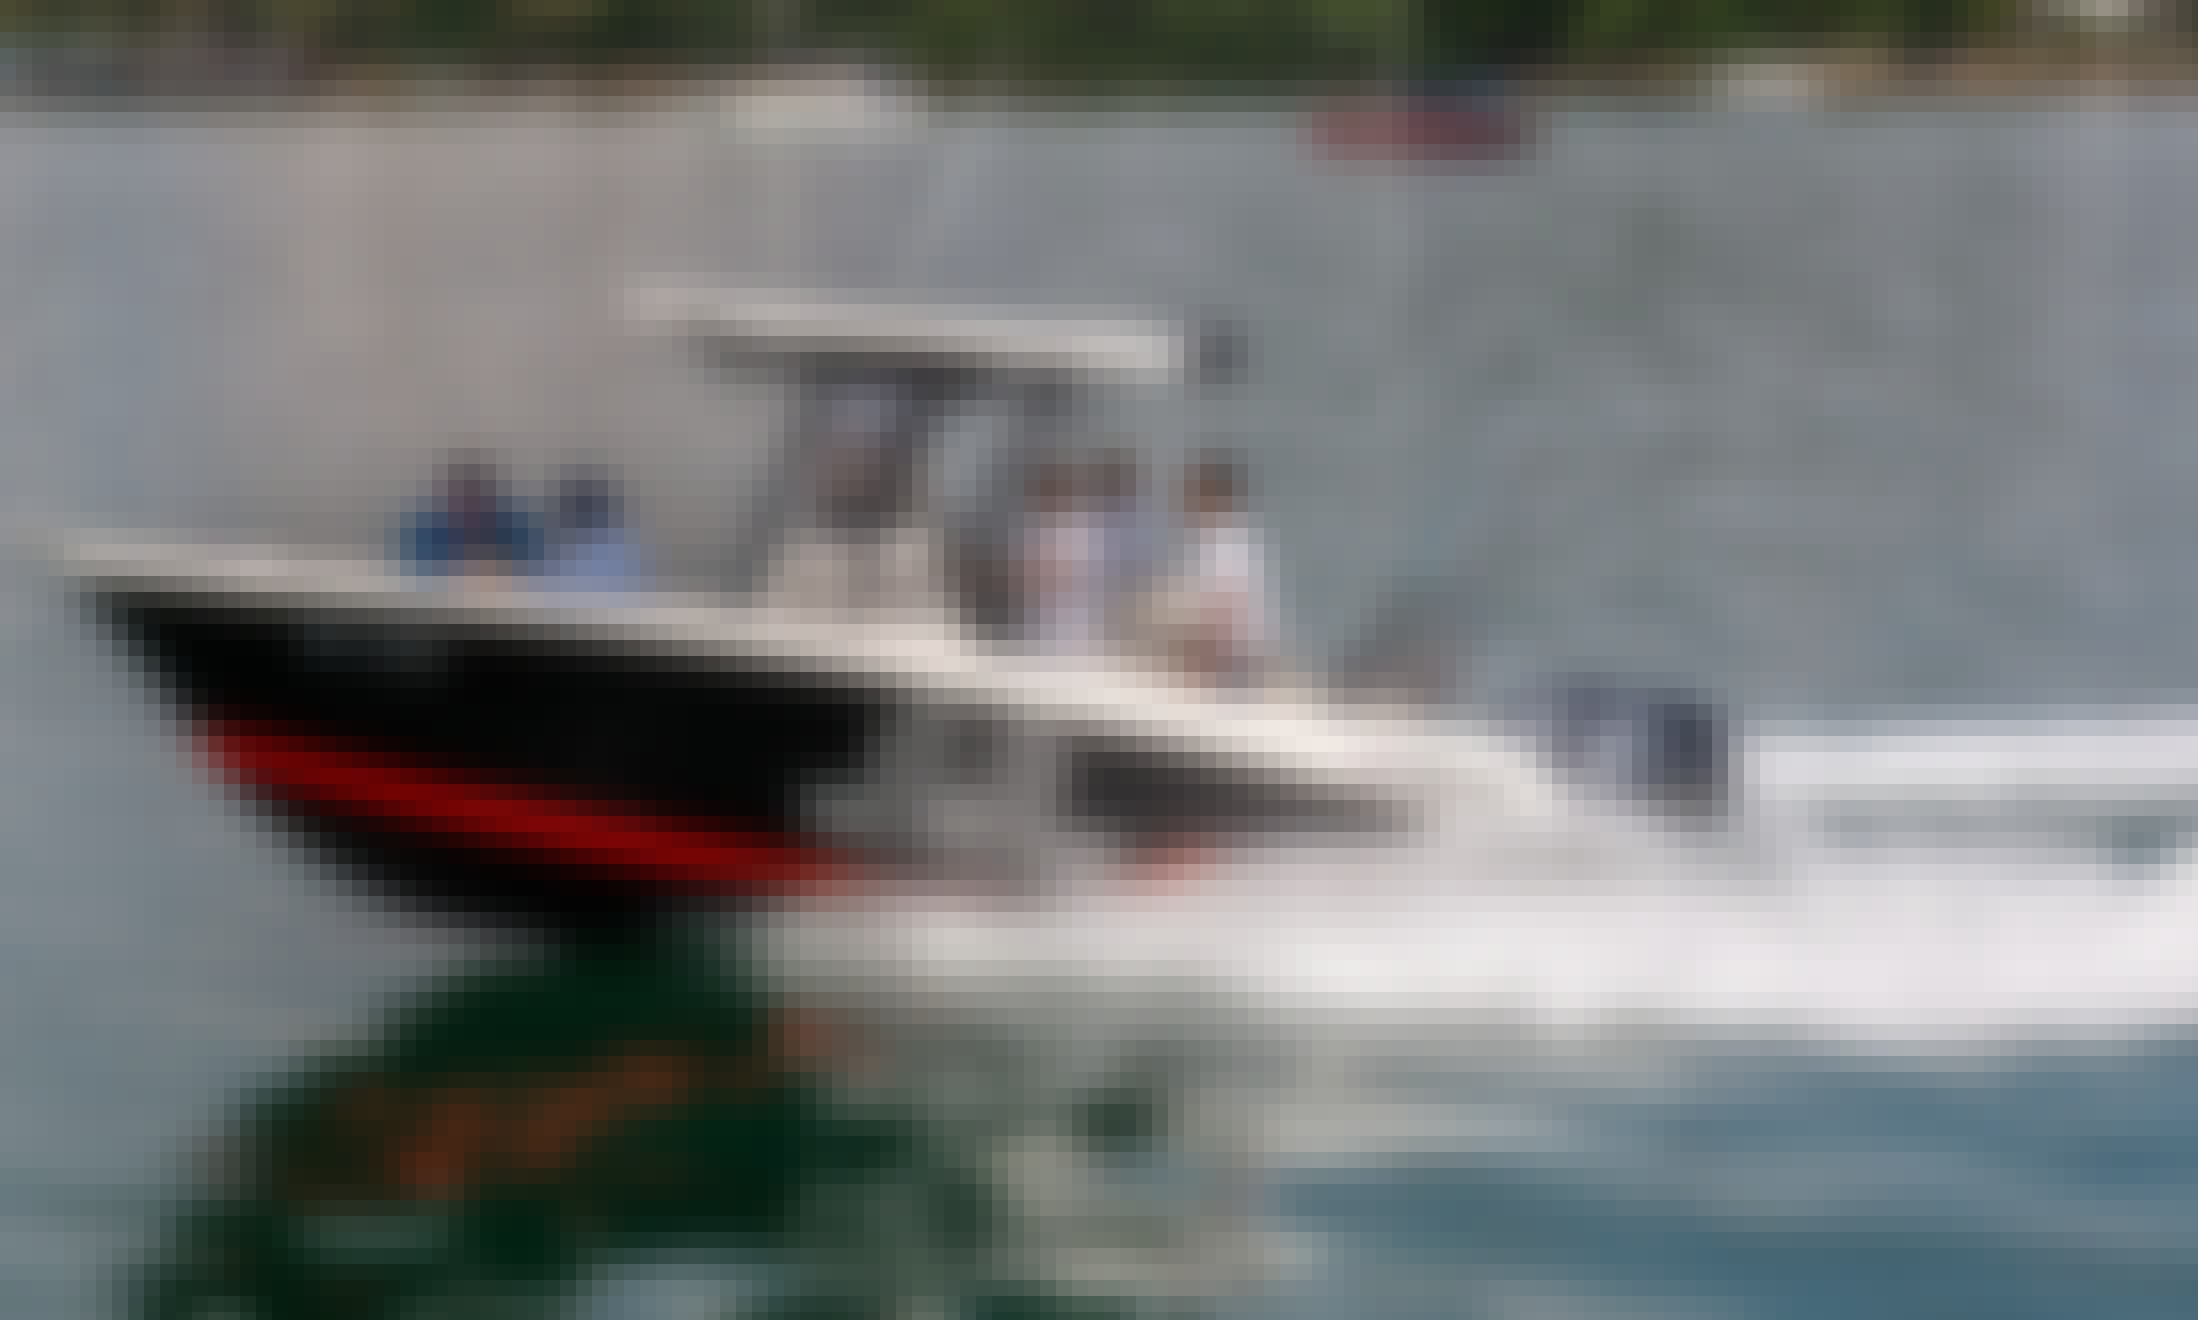 Rent this Scarab Wellcraft 242 for 4 People in Phuket, Thailand